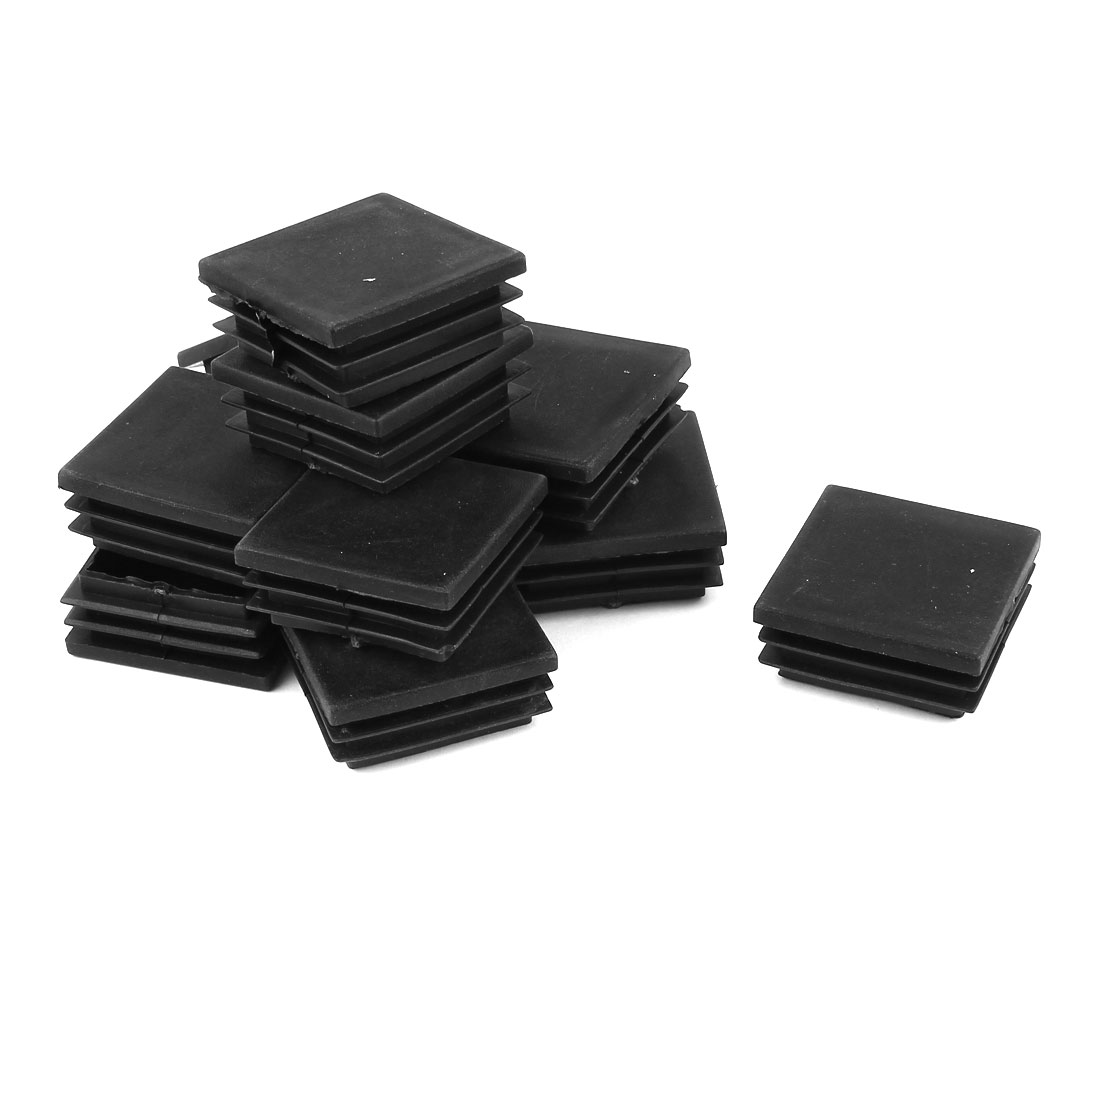 12 Pcs Black Plastic Square Blanking End Caps Tubing Tube Cover Inserts 45mm x 45mm